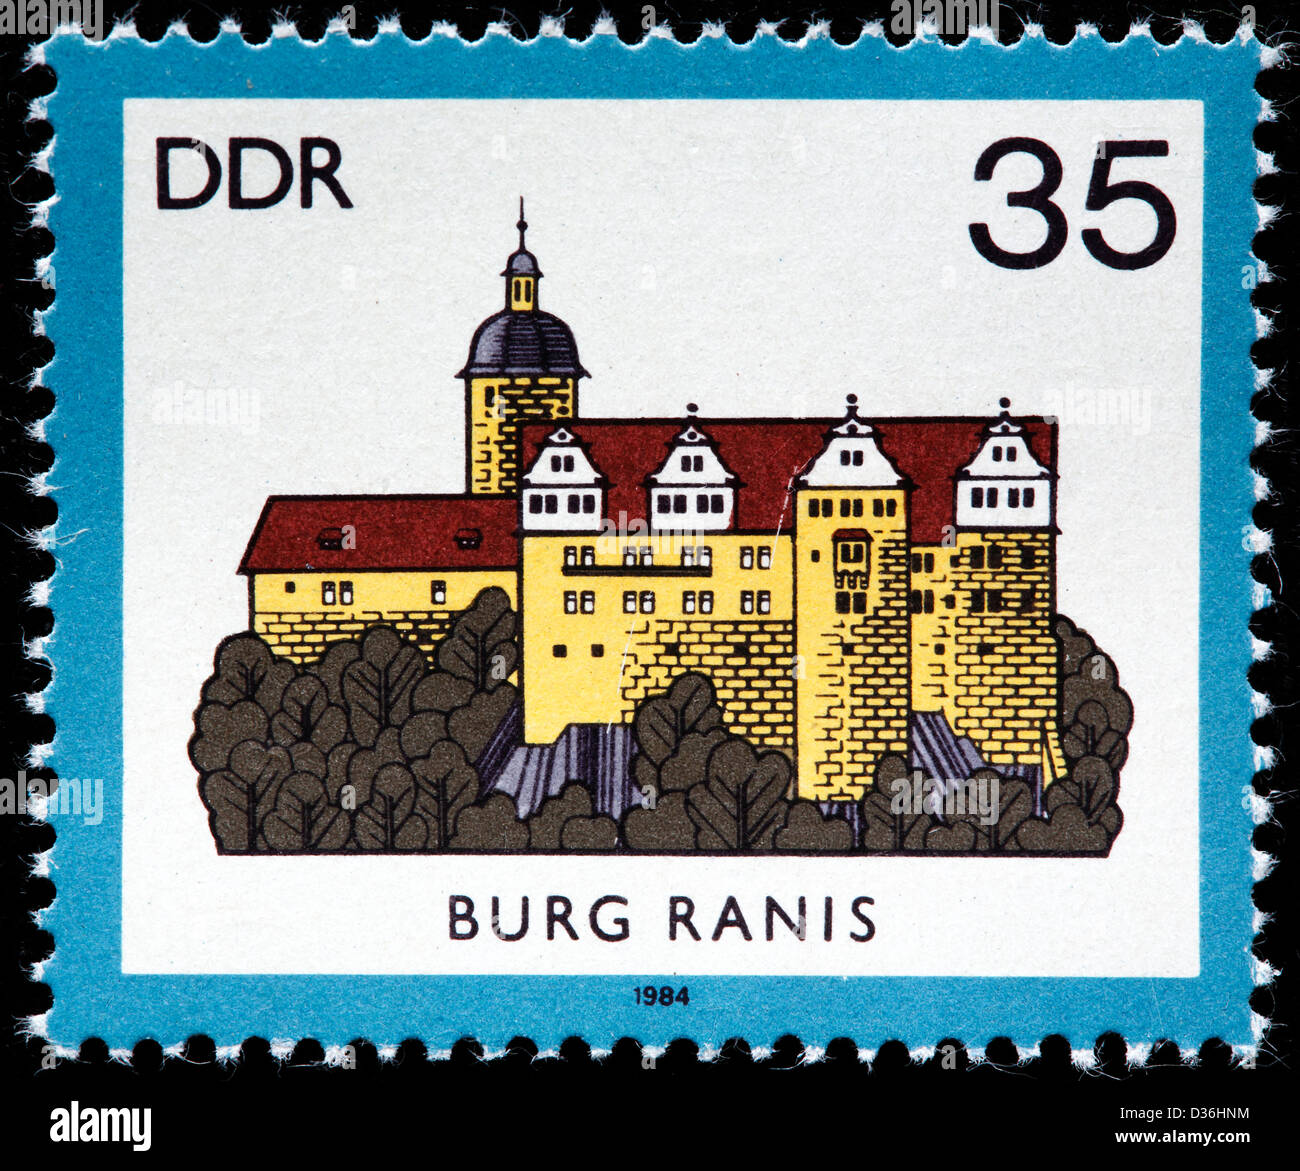 Ranis castle, Thuringia, postage stamp, Germany, 1984 - Stock Image